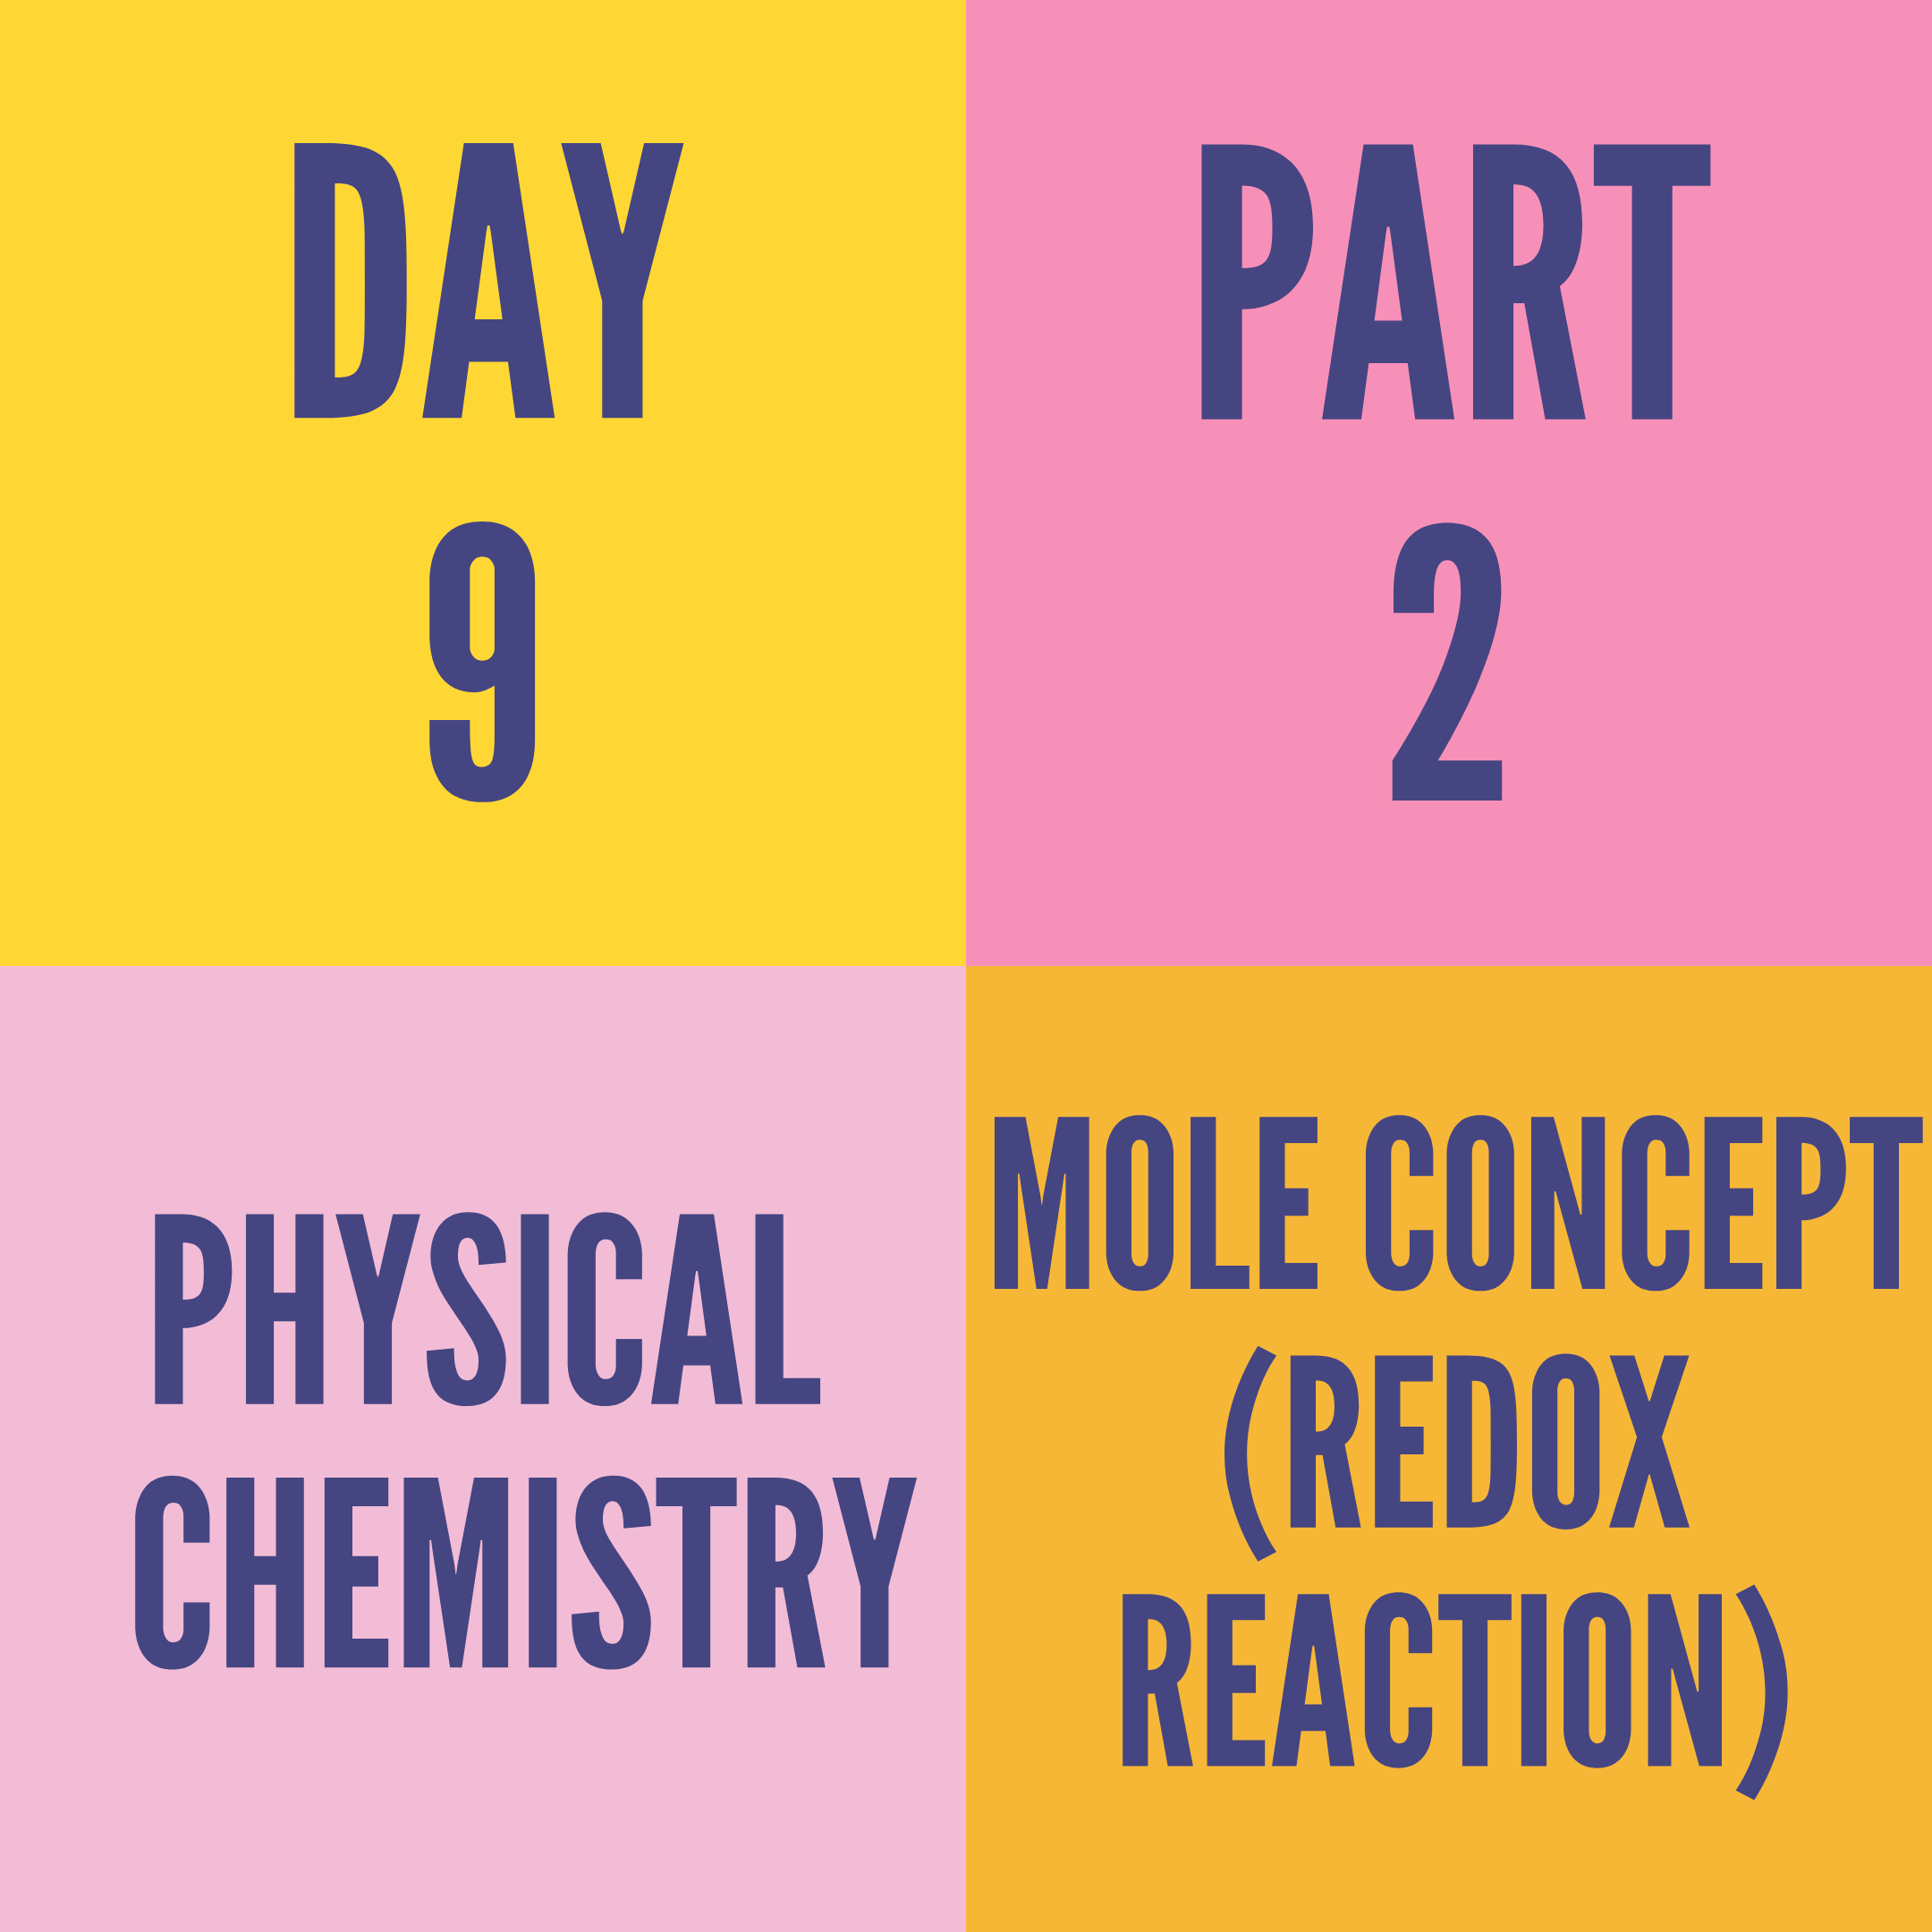 DAY-9 PART-2 MOLE CONCEPT (REDOX REACTION)